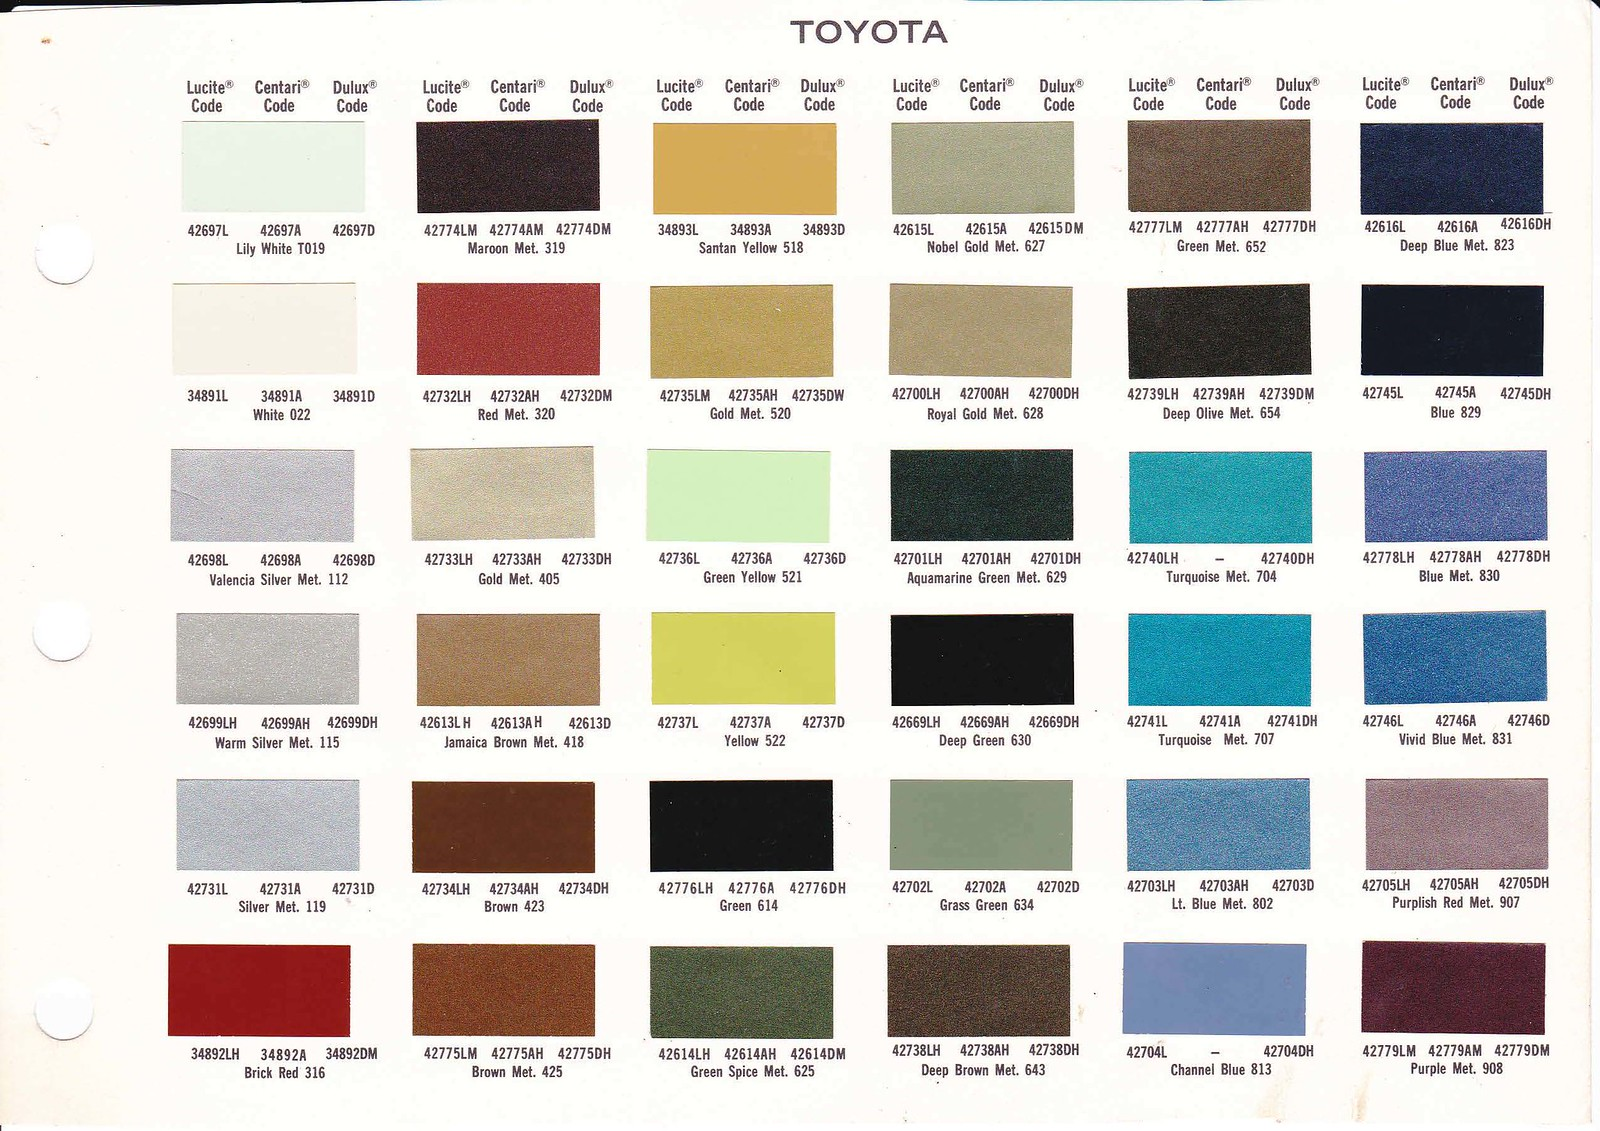 Toyota Wiring Diagram Colour Code : Toyota fj cruiser paint code location get free